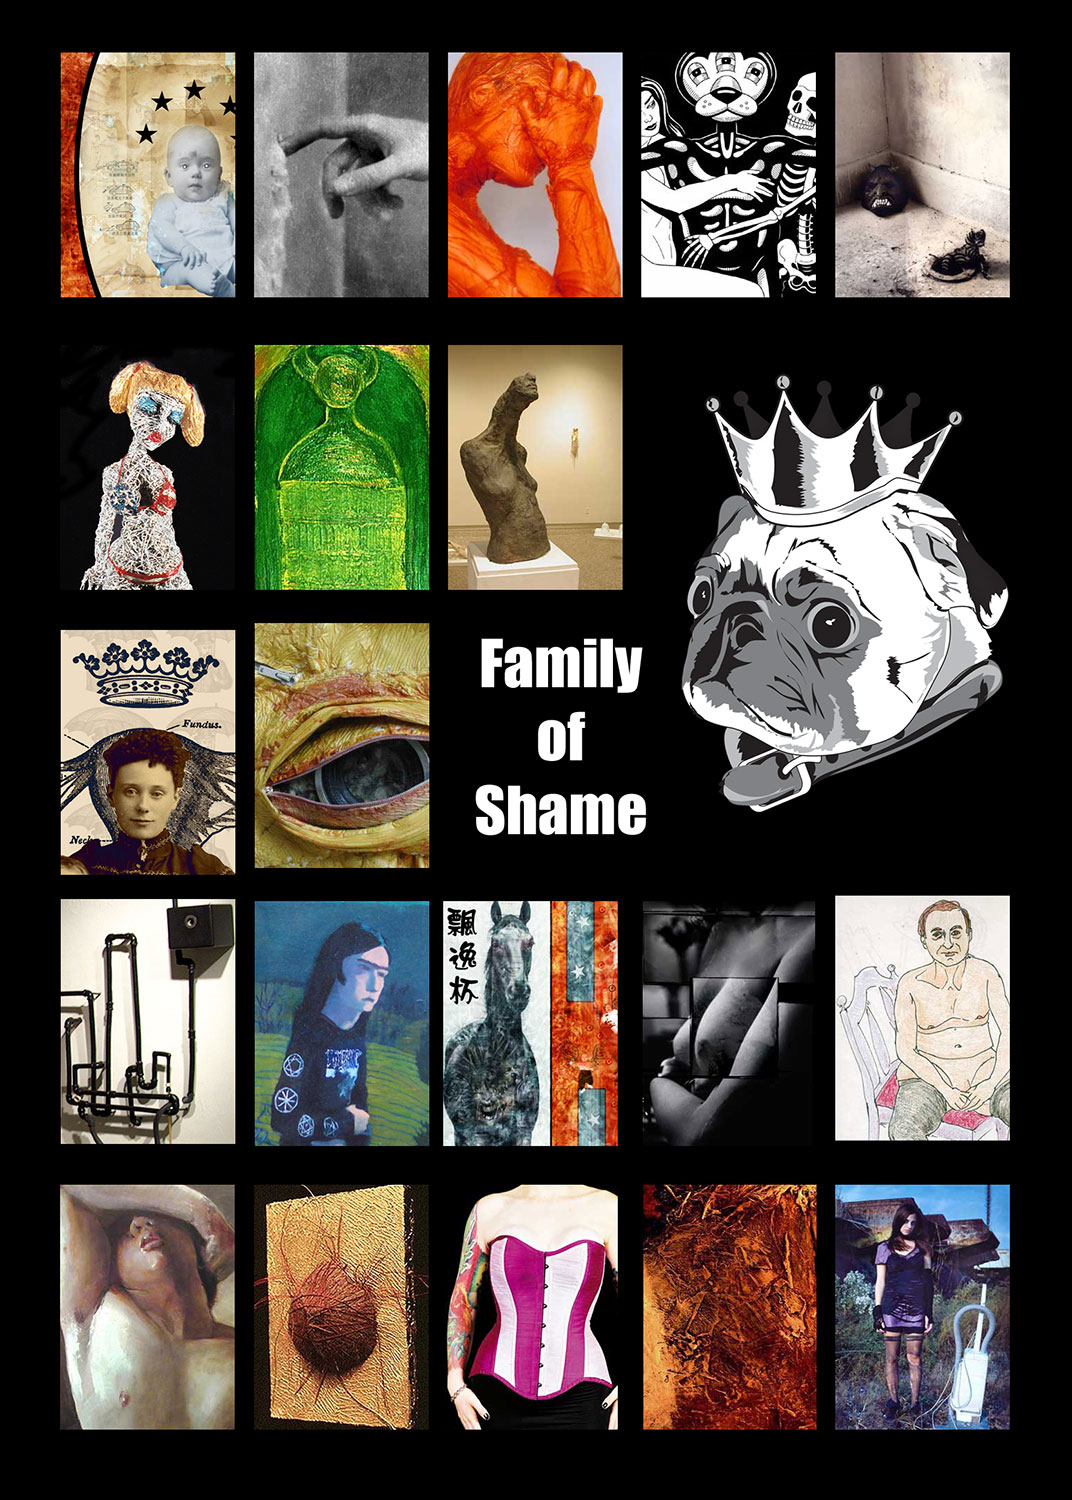 Family of Shame Subversive Arts Conglomerate